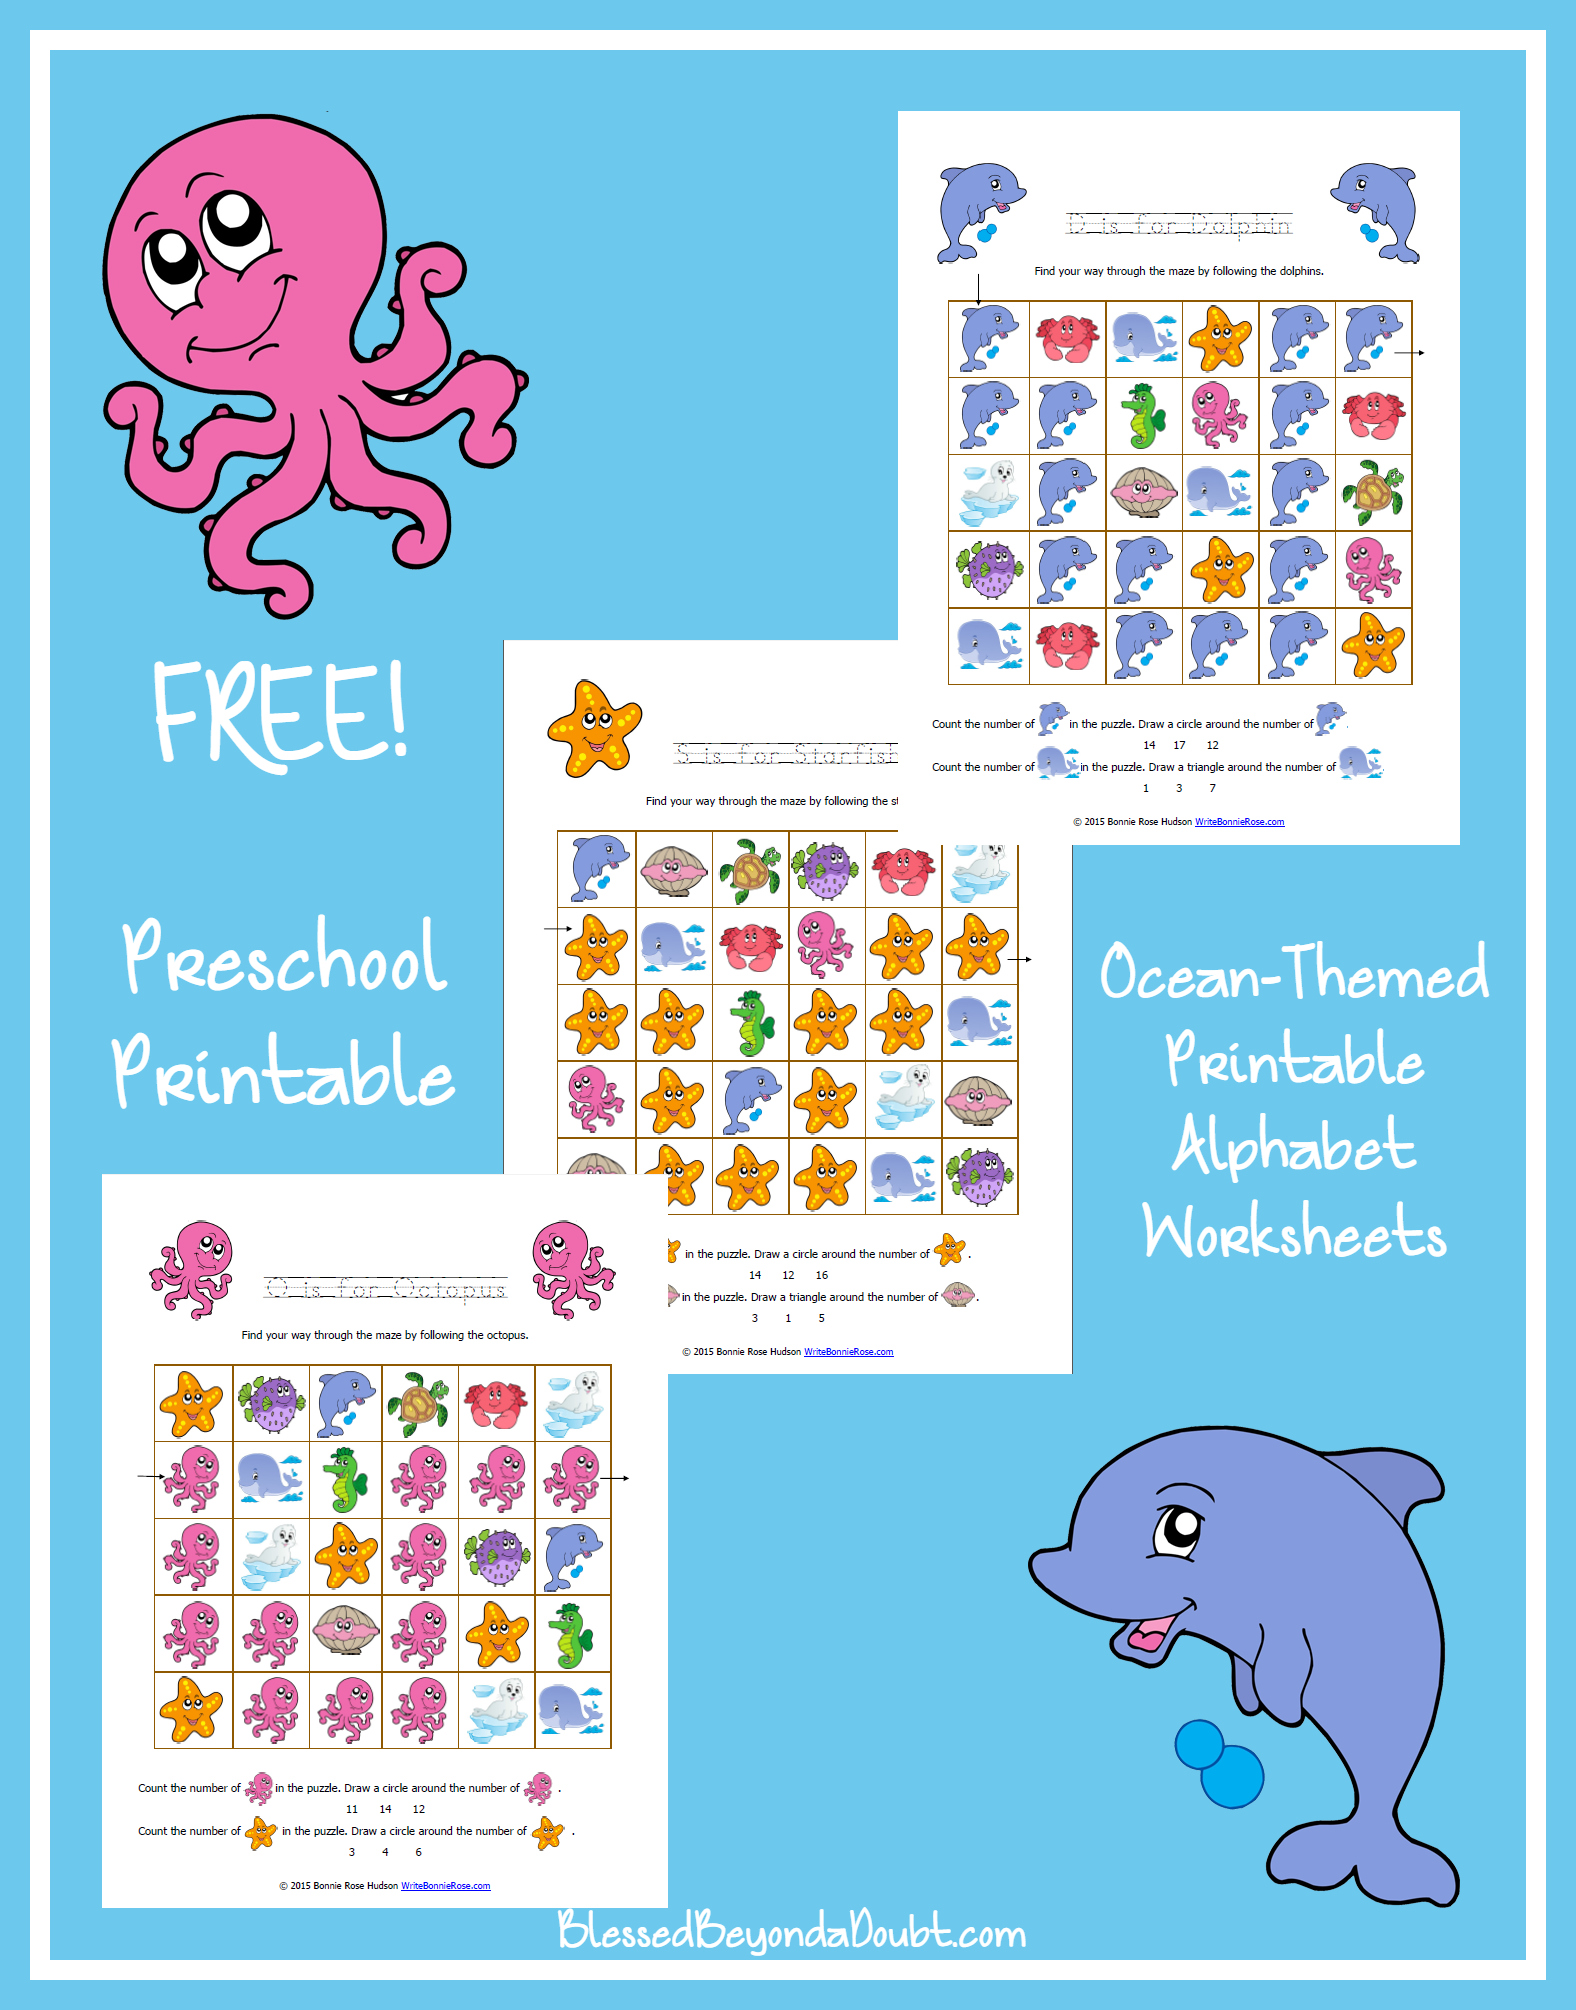 Free Ocean Themed Printable Alphabet Worksheets For Preschool